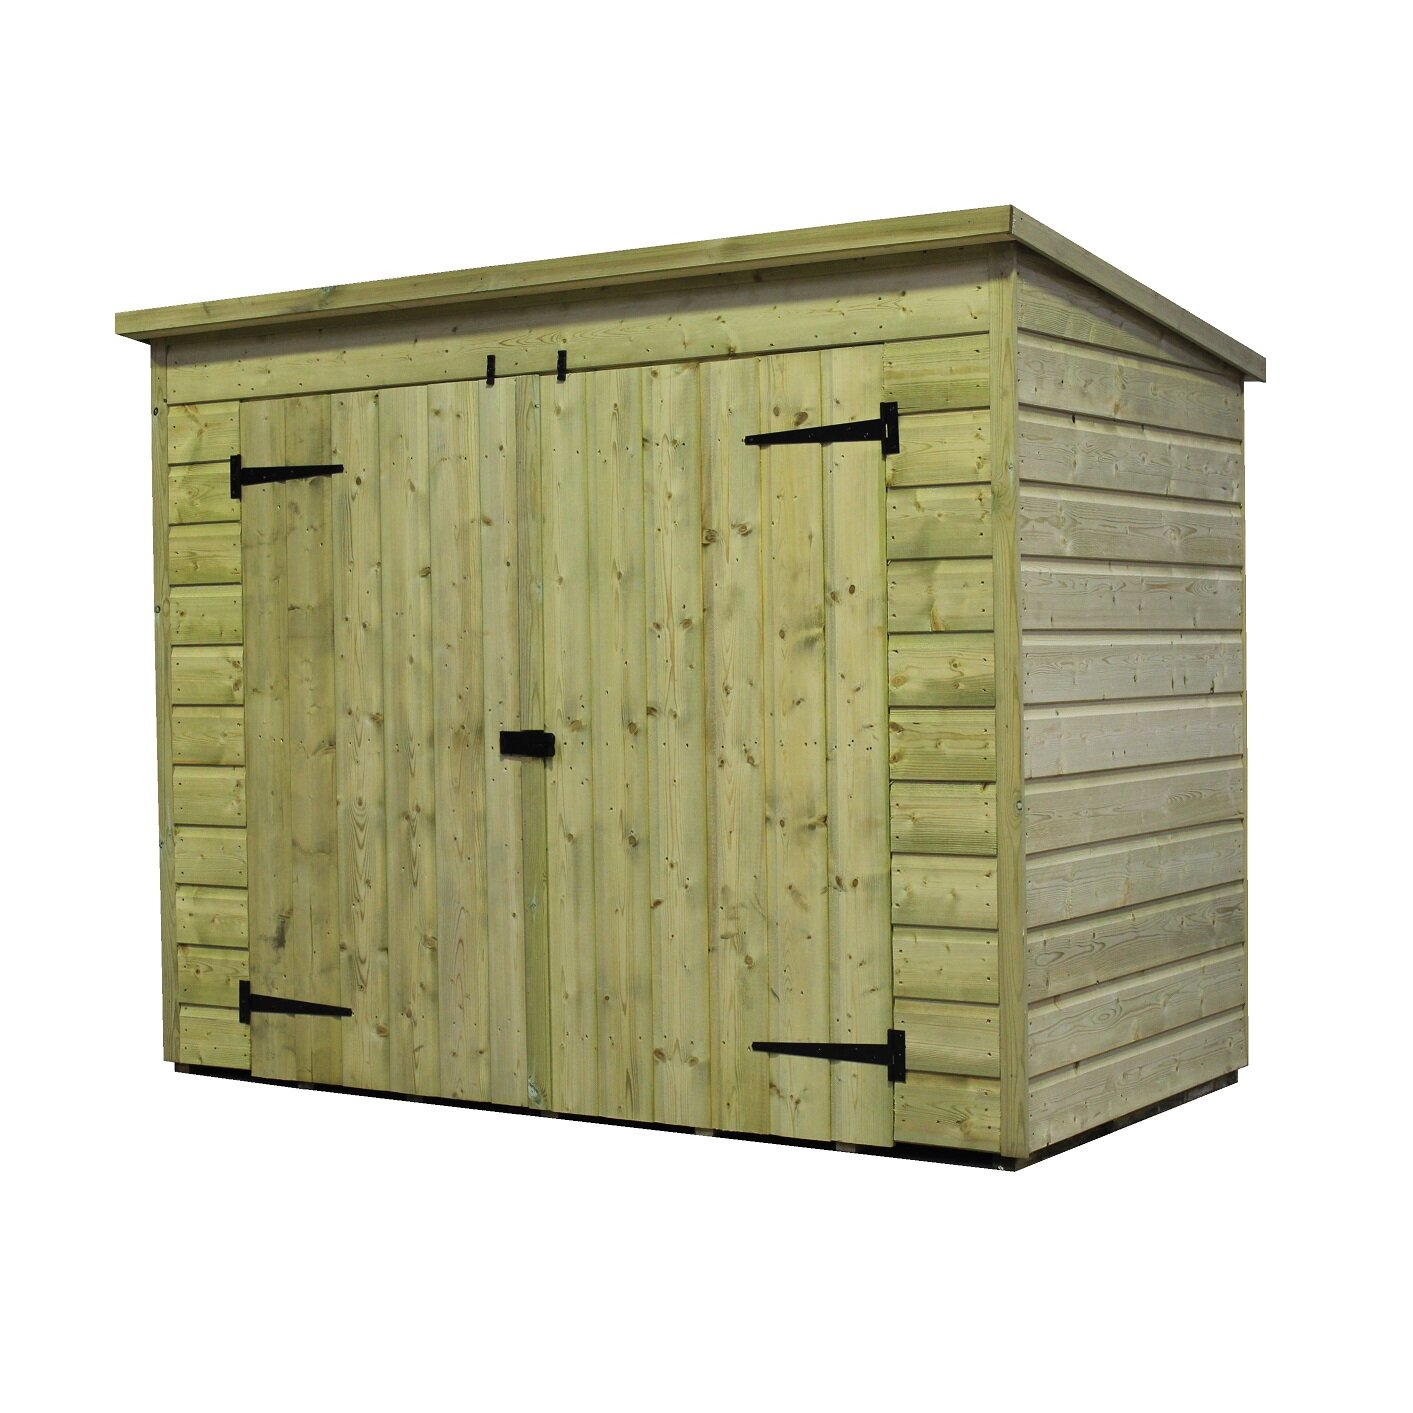 Empire sheds ltd 7 x 3 wooden lean to shed reviews for Garden shed 7 x 3